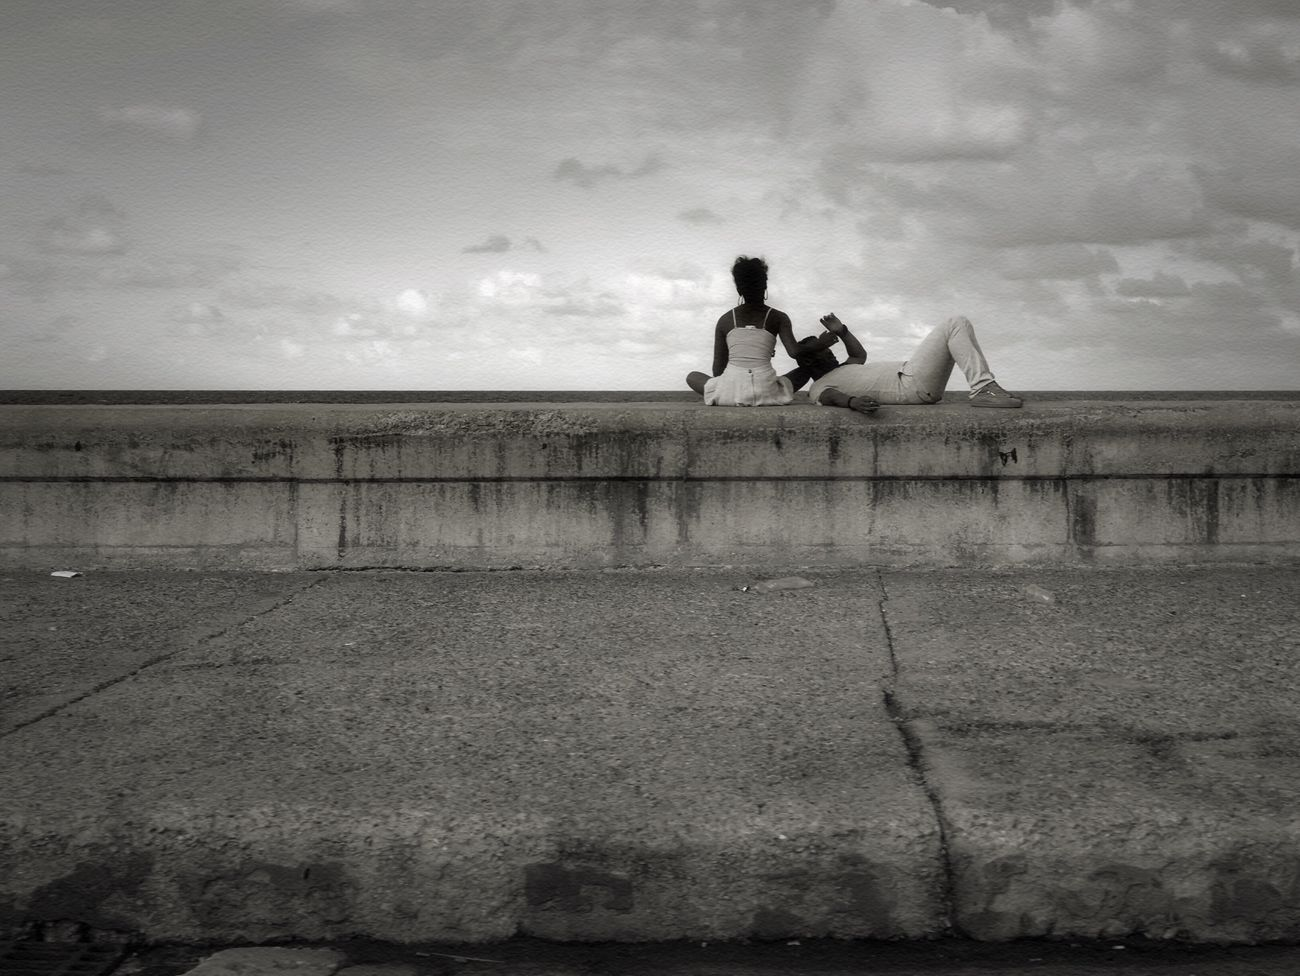 Sitting Sky Sea Real People Leisure Activity Two People Water Lifestyles Relaxation Women Cloud - Sky Horizon Over Water Togetherness Beach Outdoors Bonding Traveling Streetphotography People EyeEm Best Shots - Black + White Cuba Havana Blackandwhite Monochrome